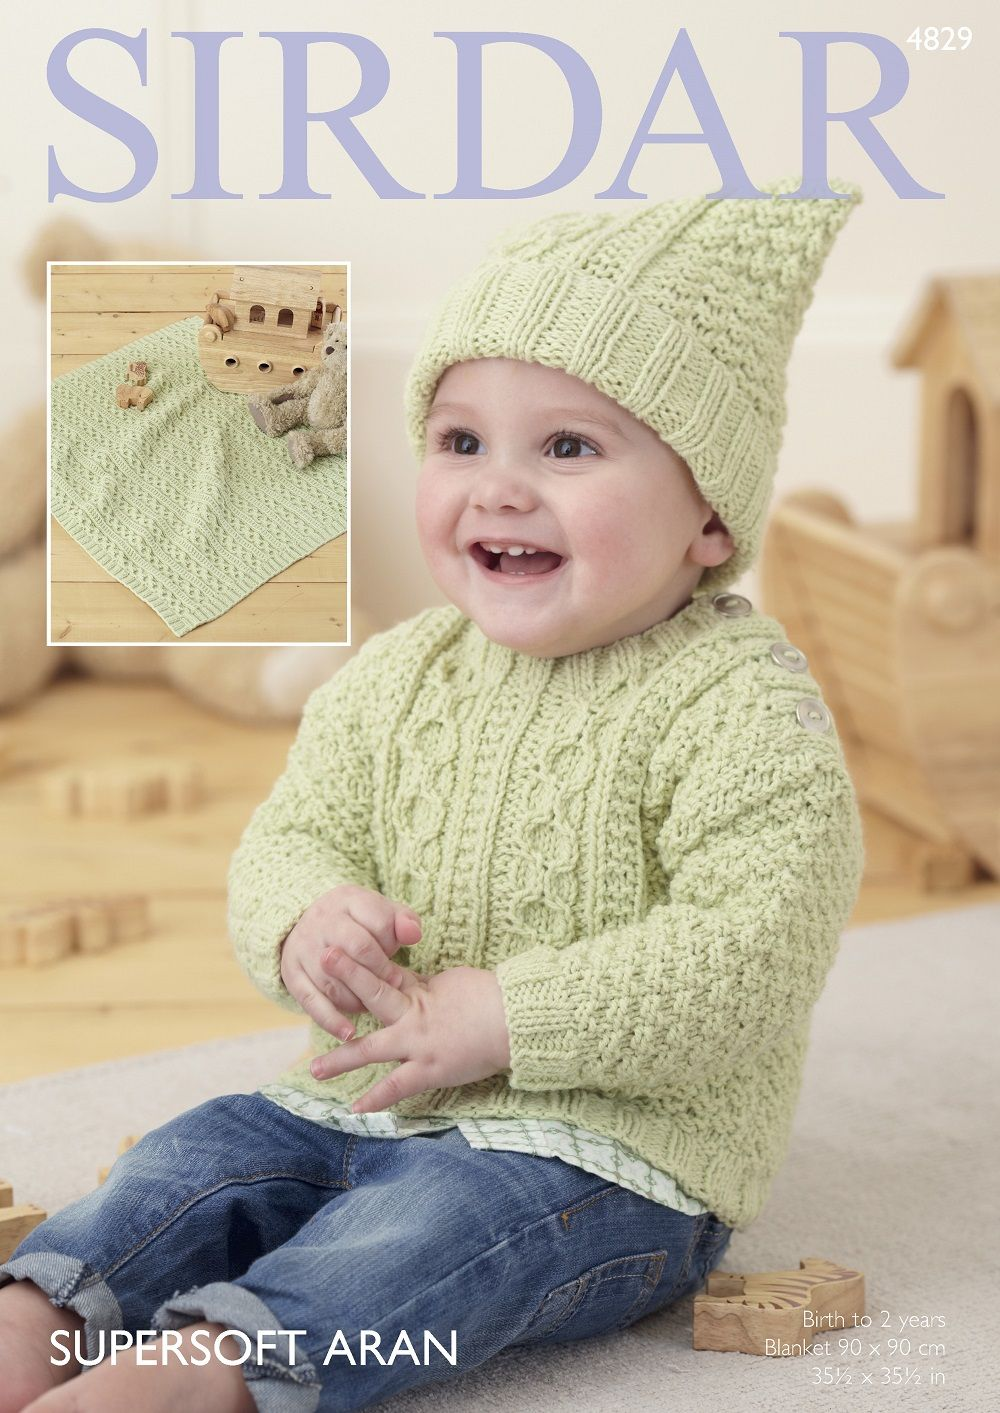 6a4fbc504 Sirdar Babies Sweaters Knitting pattern in Supersoft Aran 4829P PDF